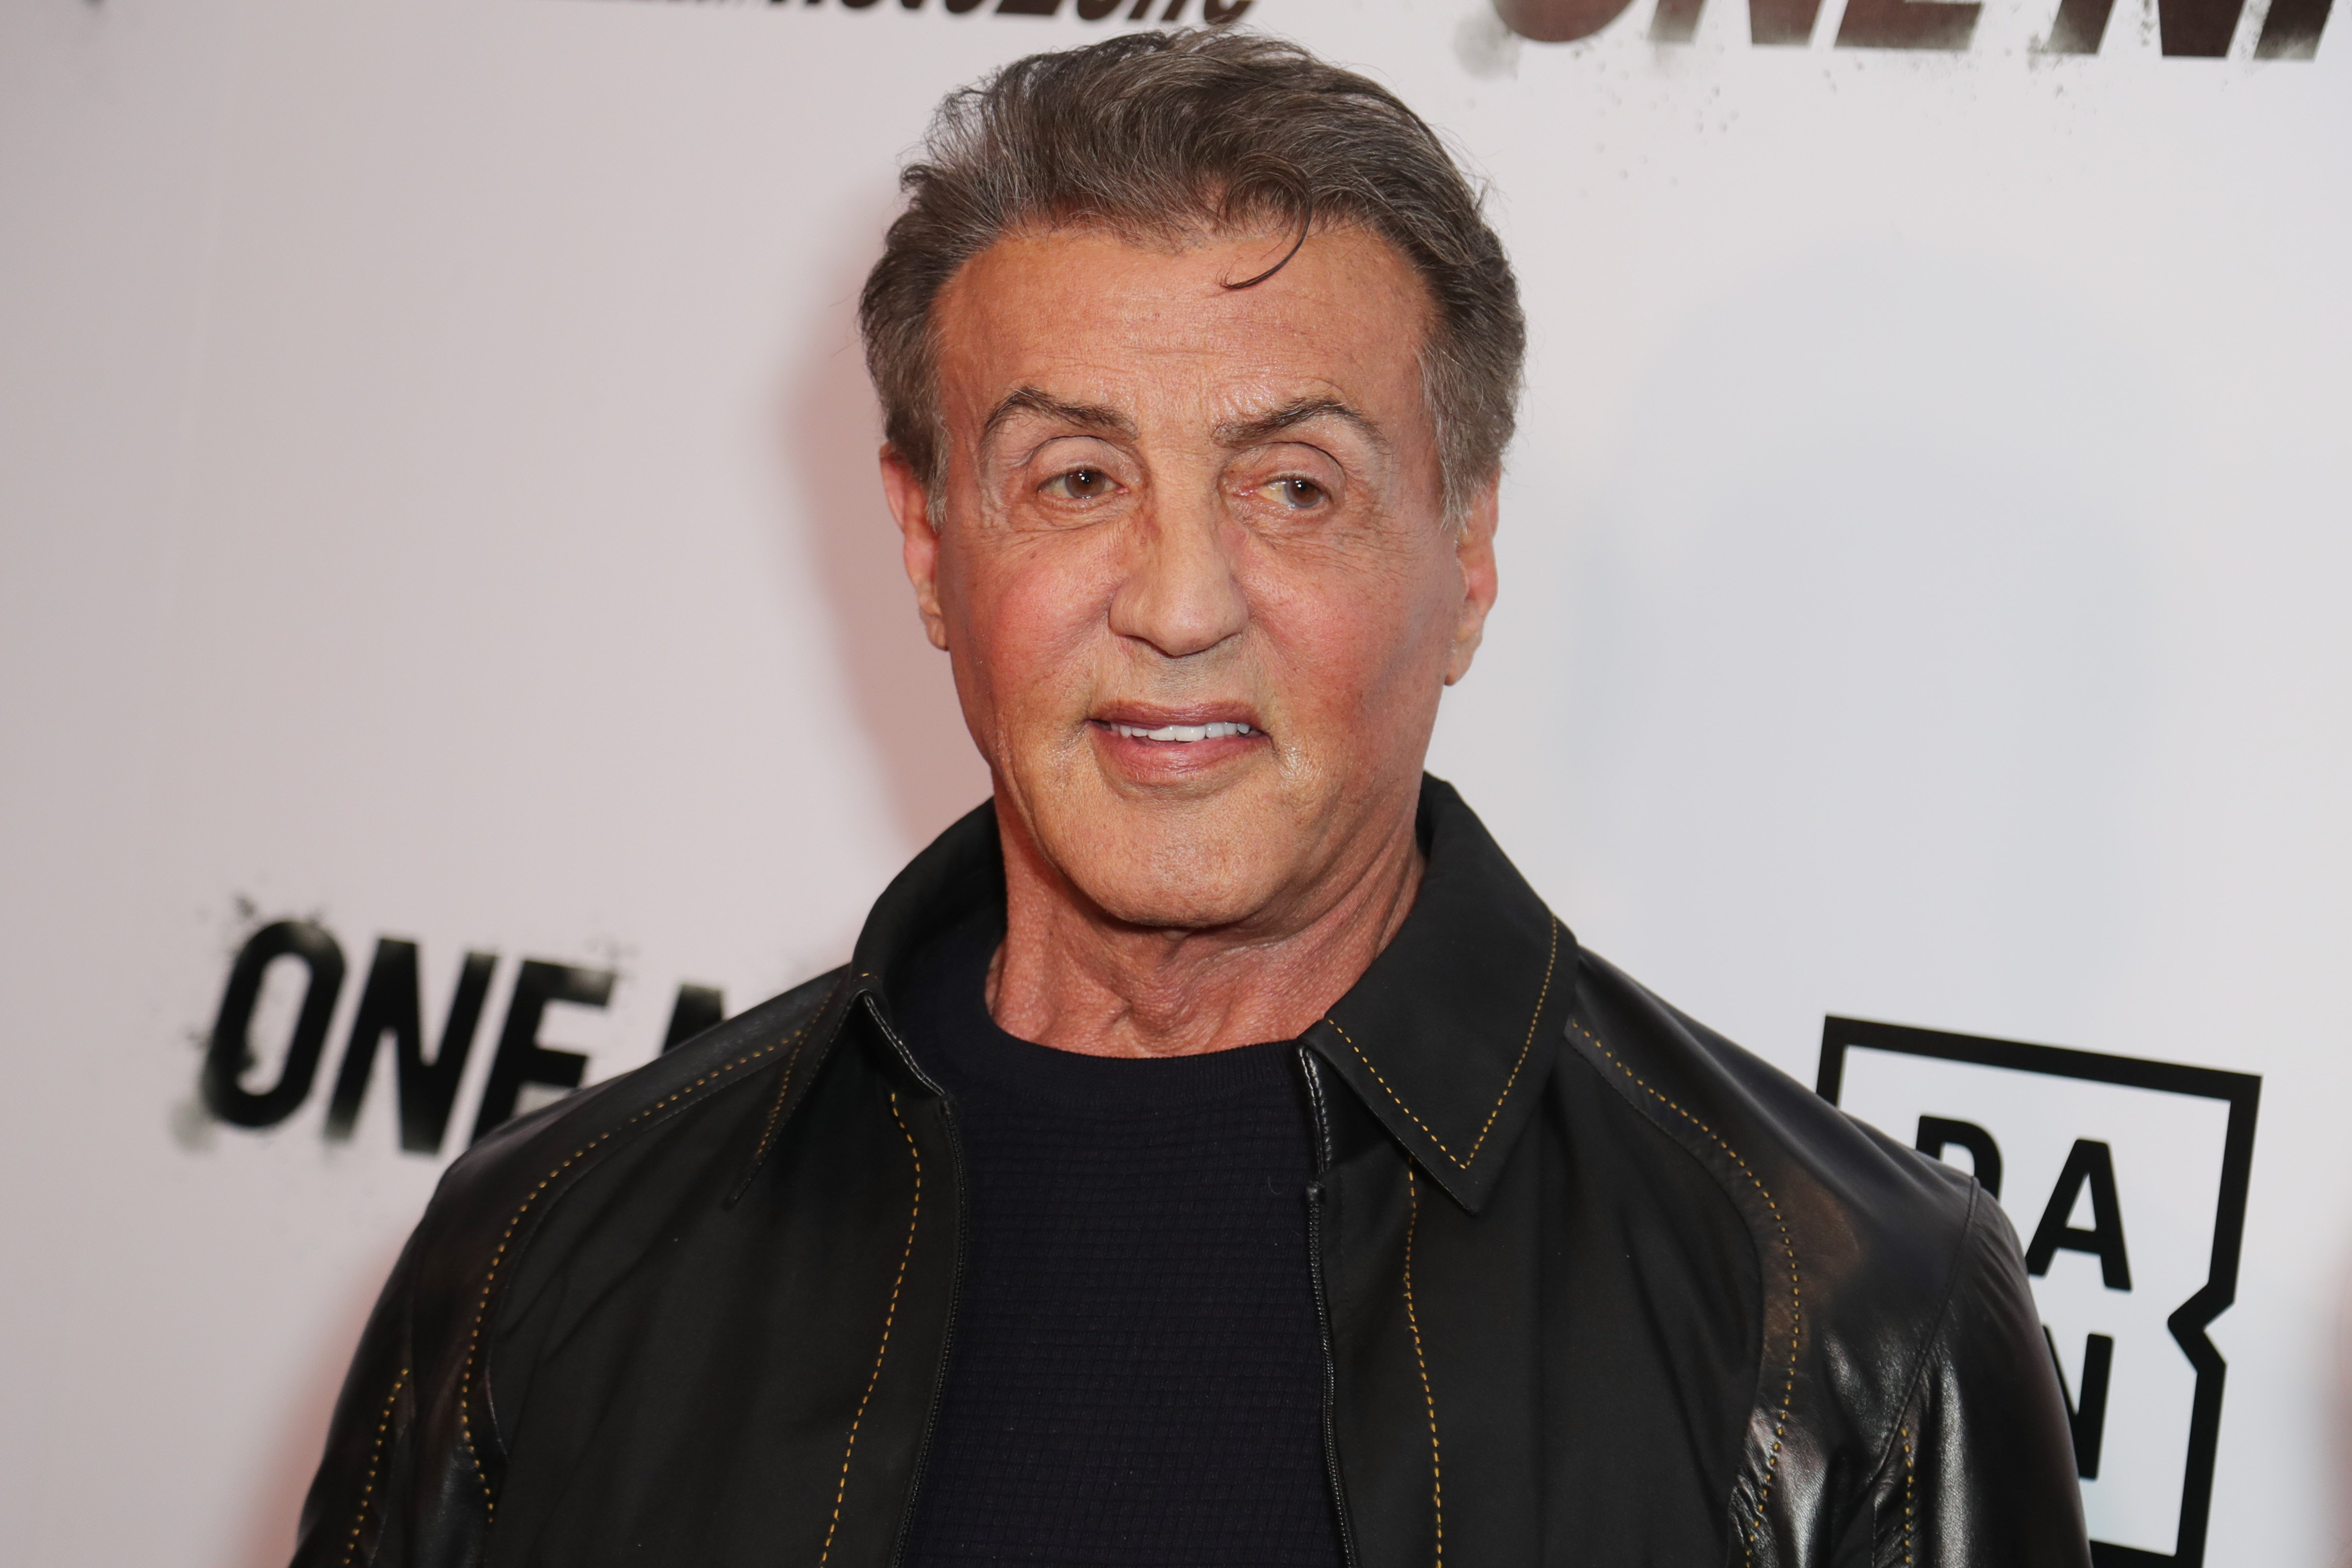 """Sylvester Stallone attends Premiere Of """"One Night: Joshua Vs. Ruiz"""" at Writers Guild Theater on November 21, 2019 in Beverly Hills, California.   Source: Getty Images"""